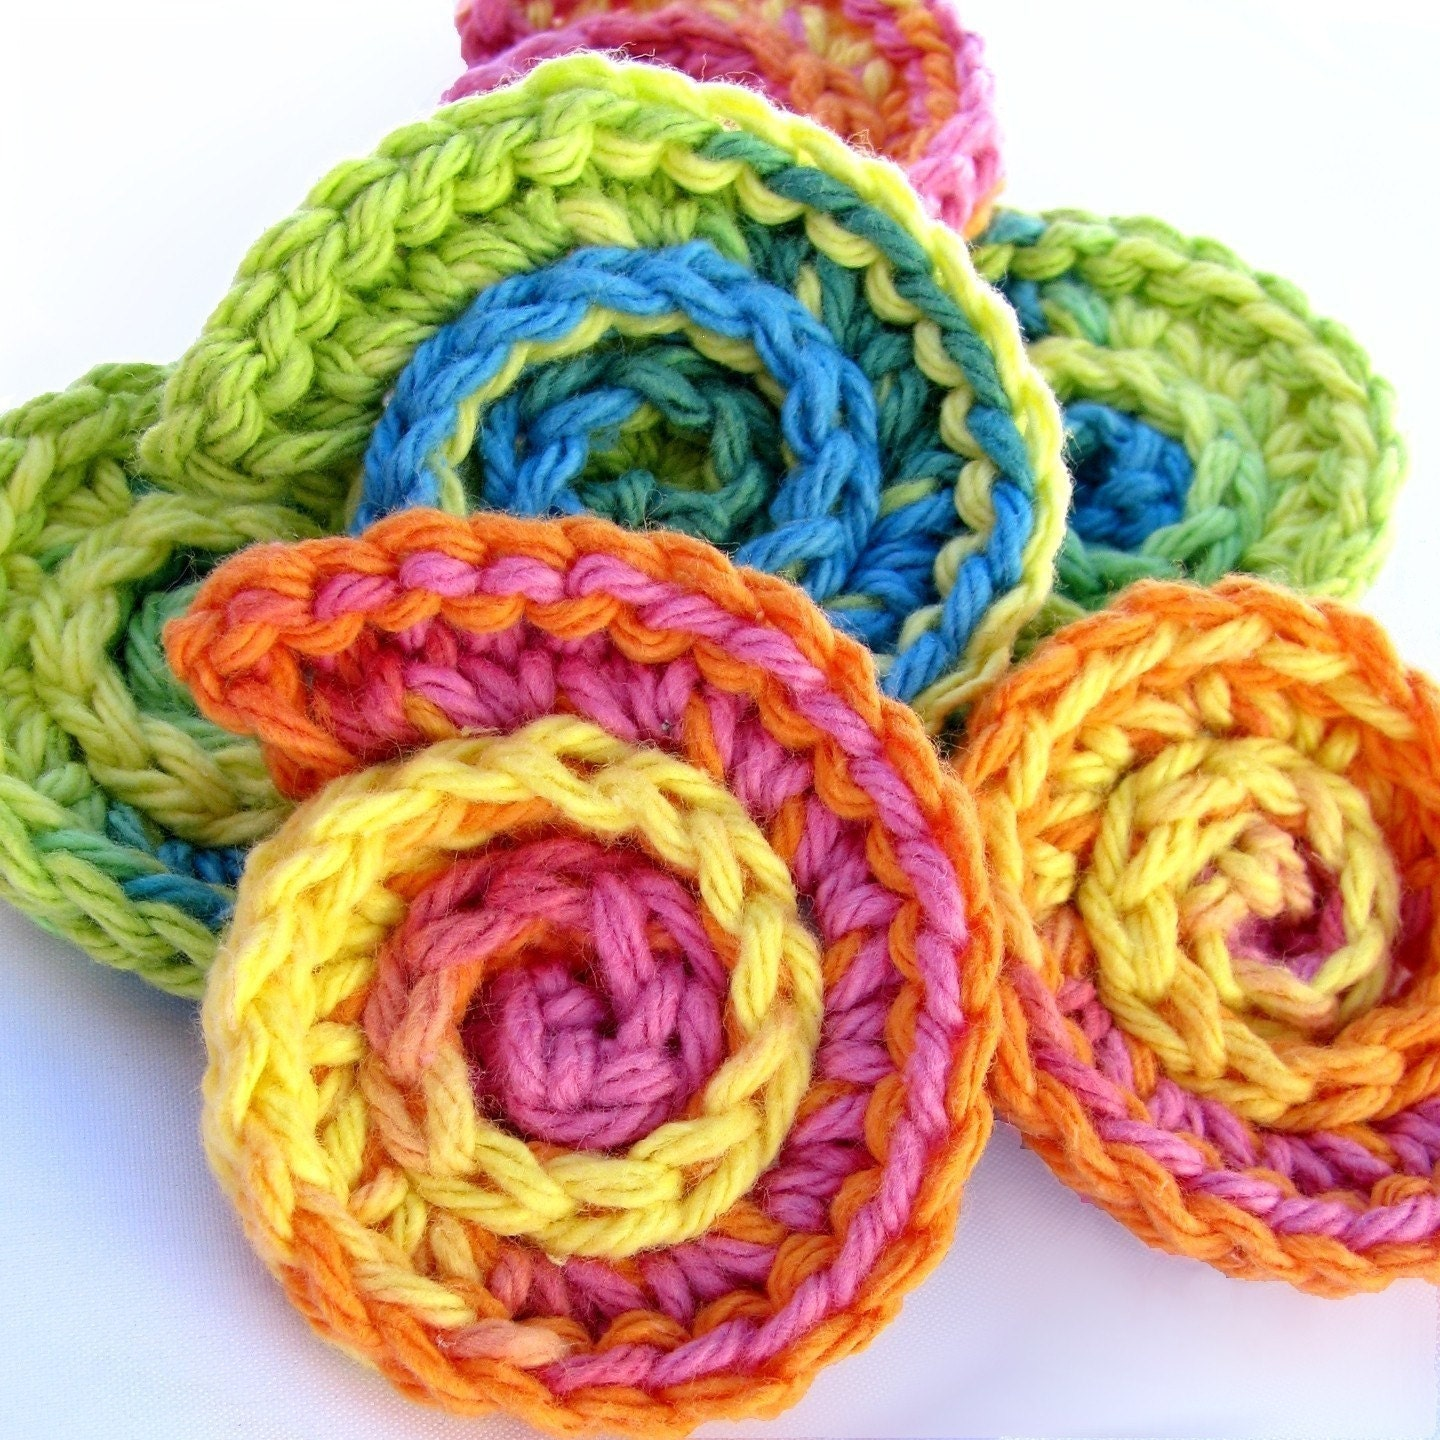 Crocheting Scrubbies : CROCHET SCRUBBIE PATTERNS ? Free Patterns